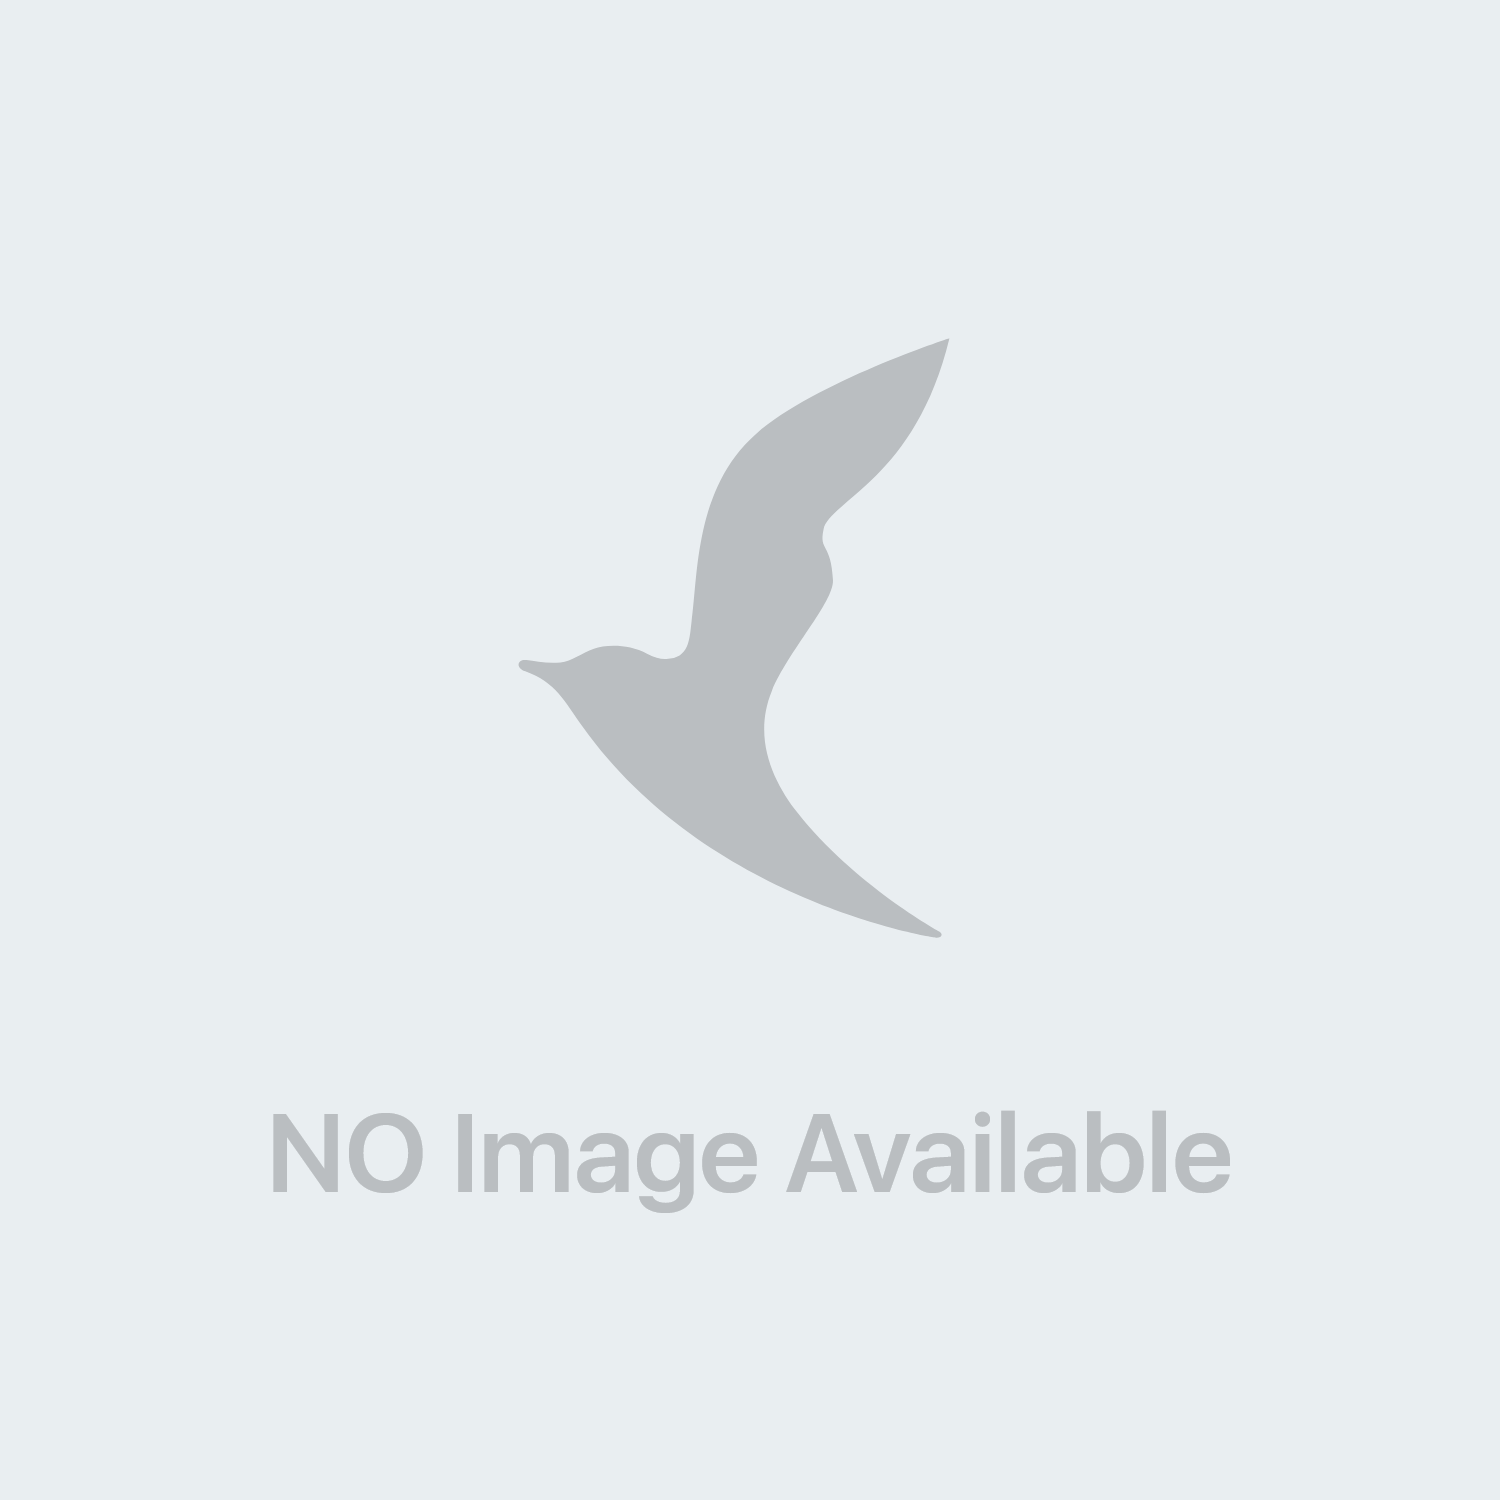 EPATOMIX Liquido Analc.200ml